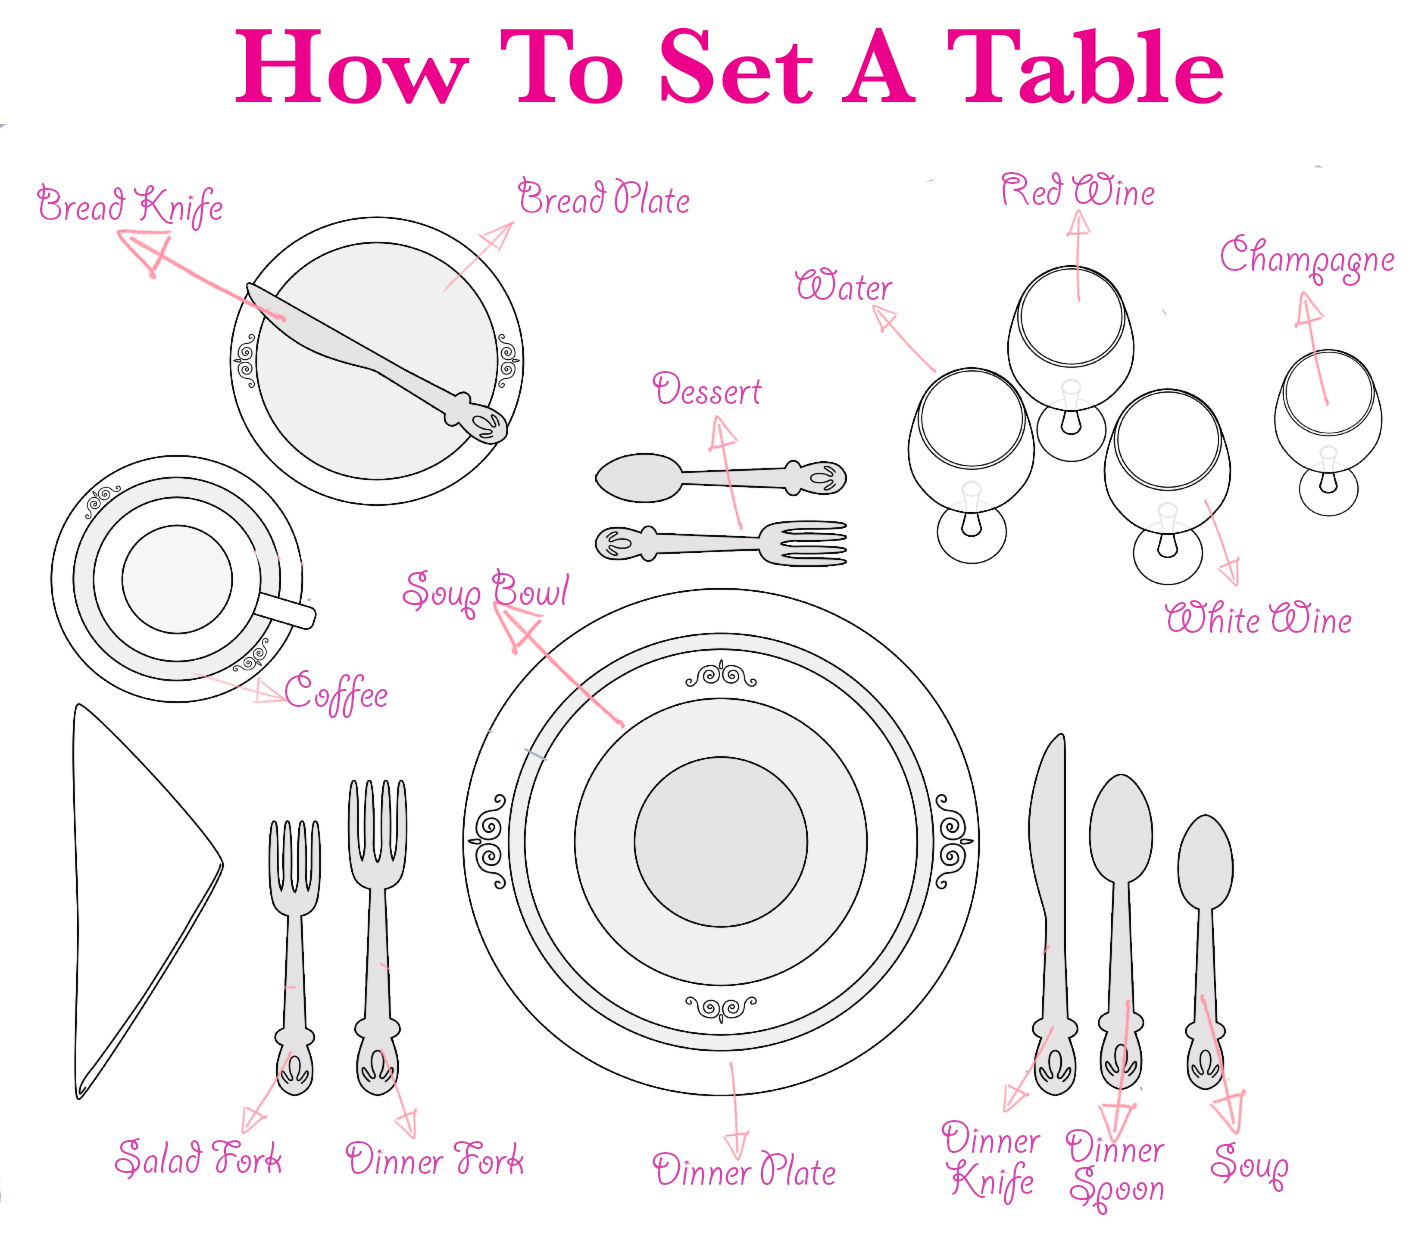 How To Set A Table Setting Ideas Inspiration Pinterest Dinner Formal Room Forks Knives